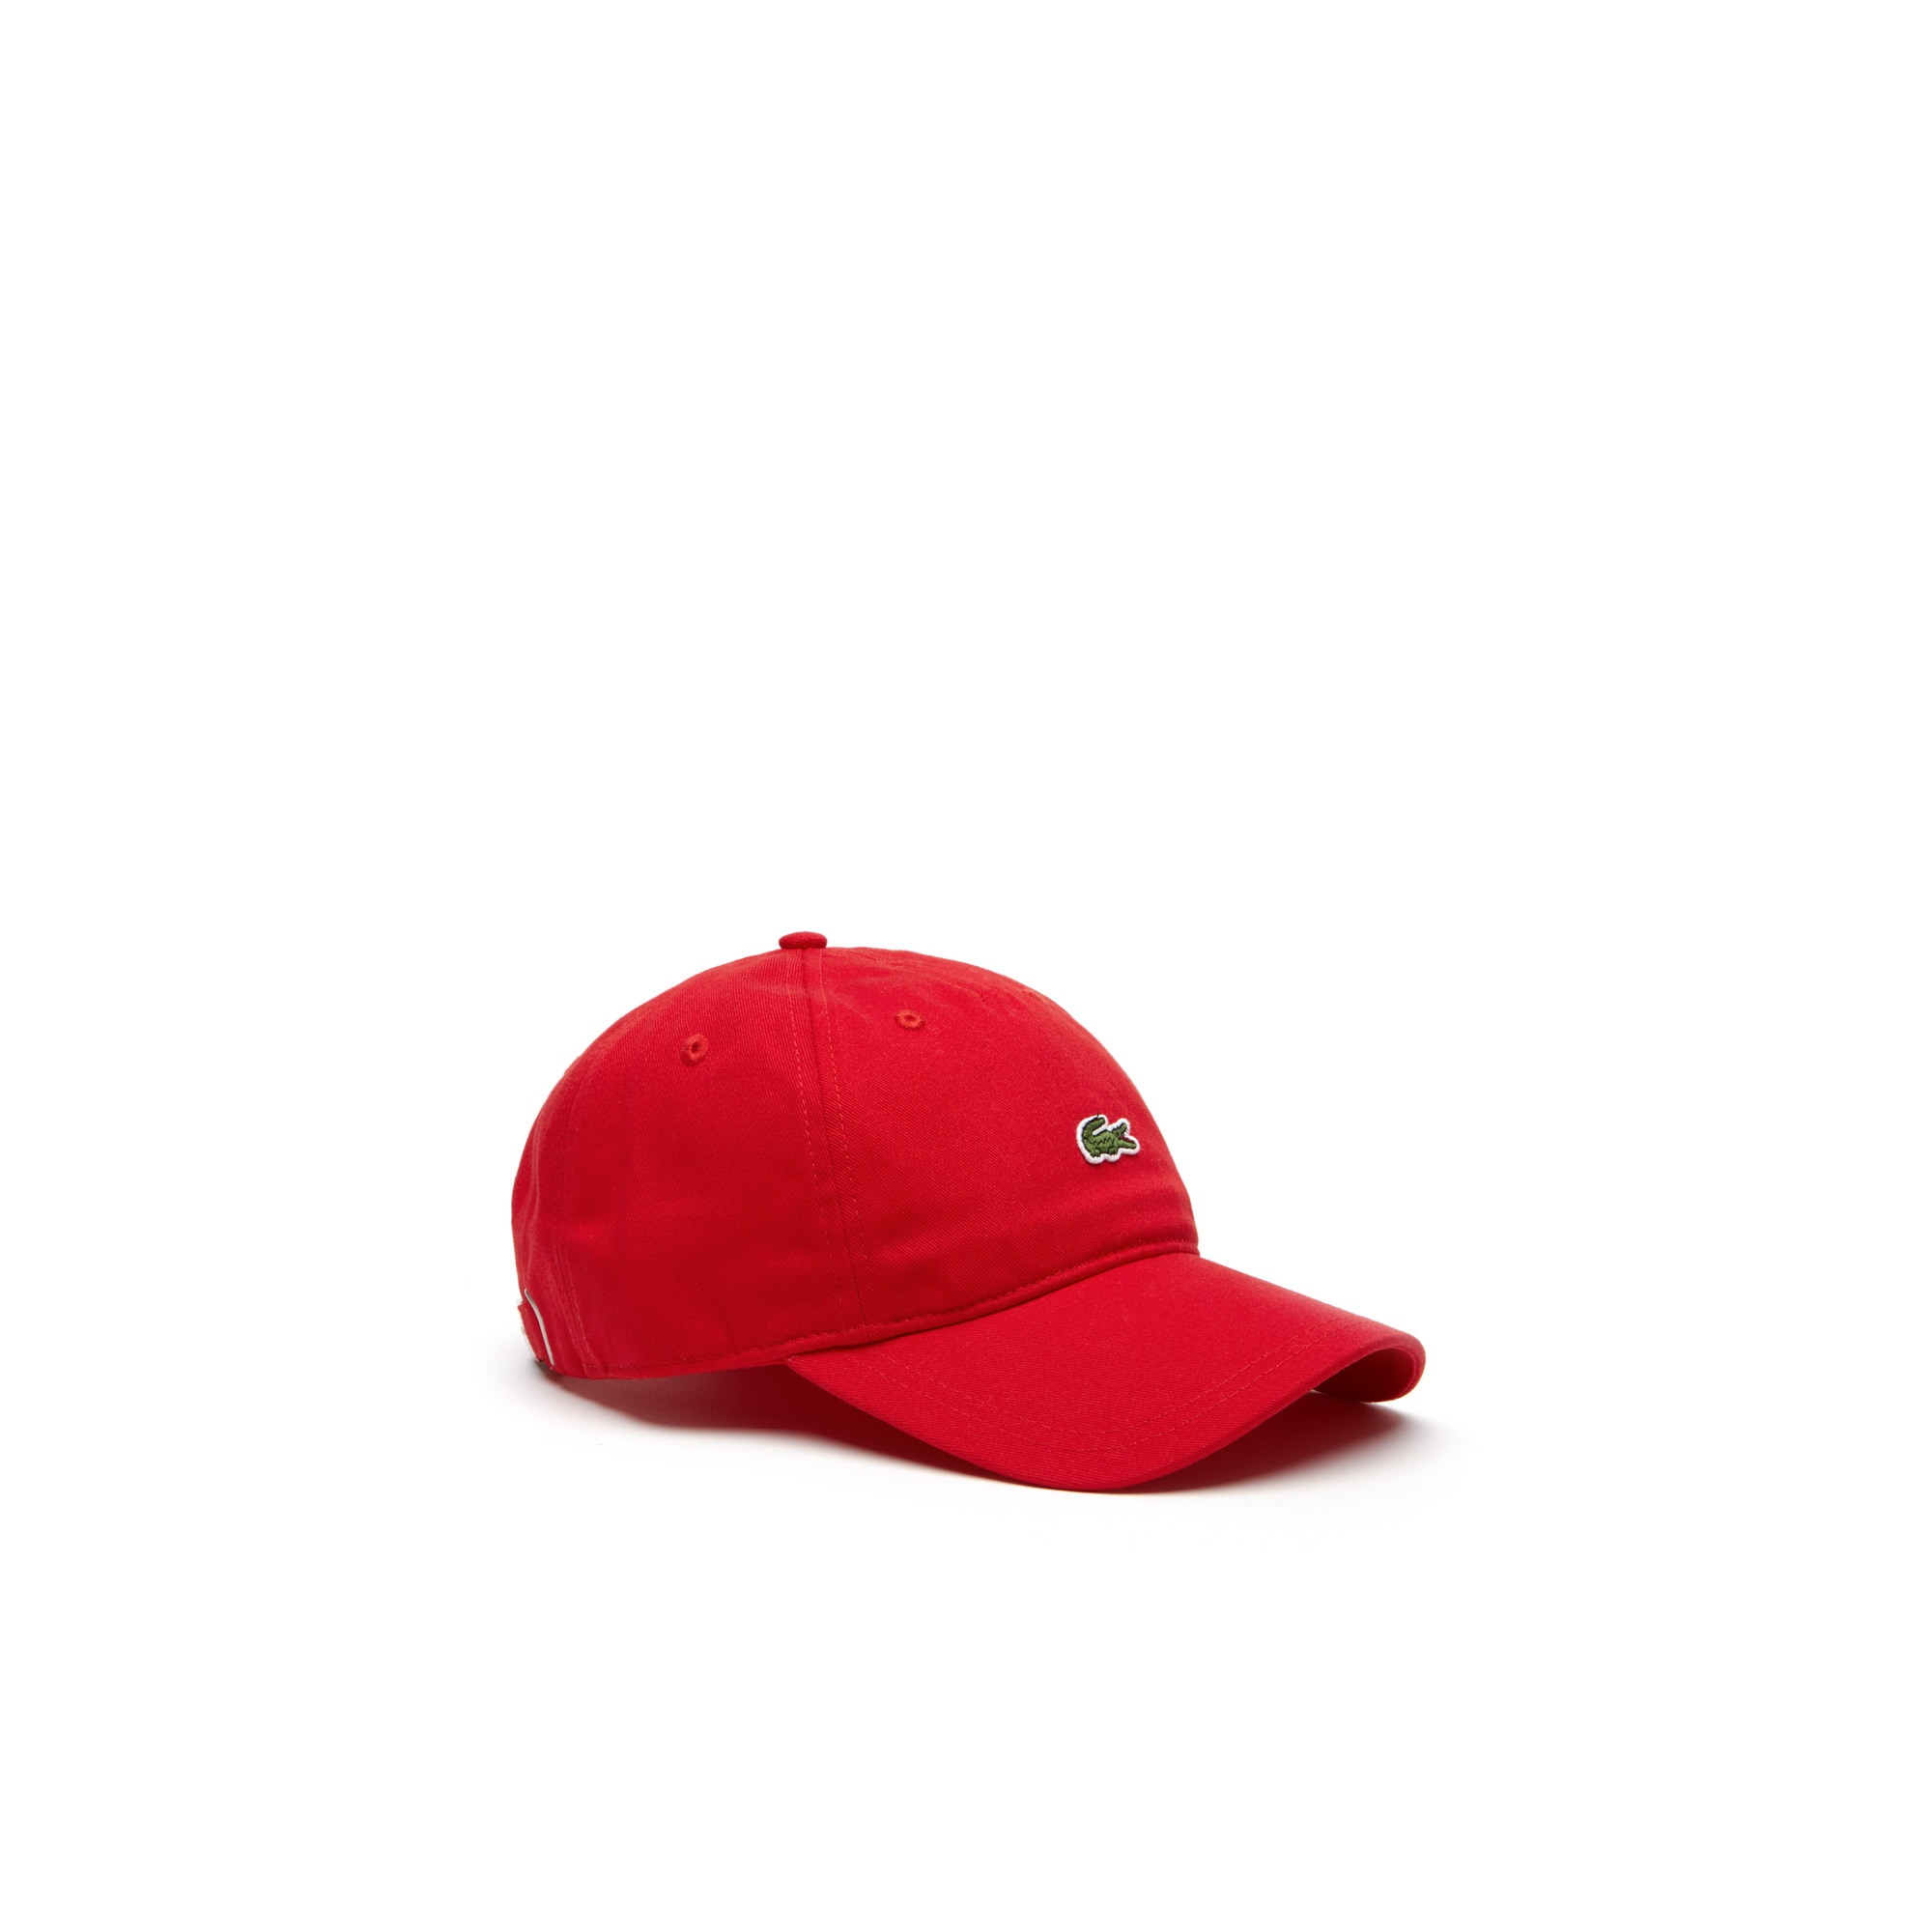 라코스테 Lacoste Mens Embroidered Crocodile Cotton Cap,red